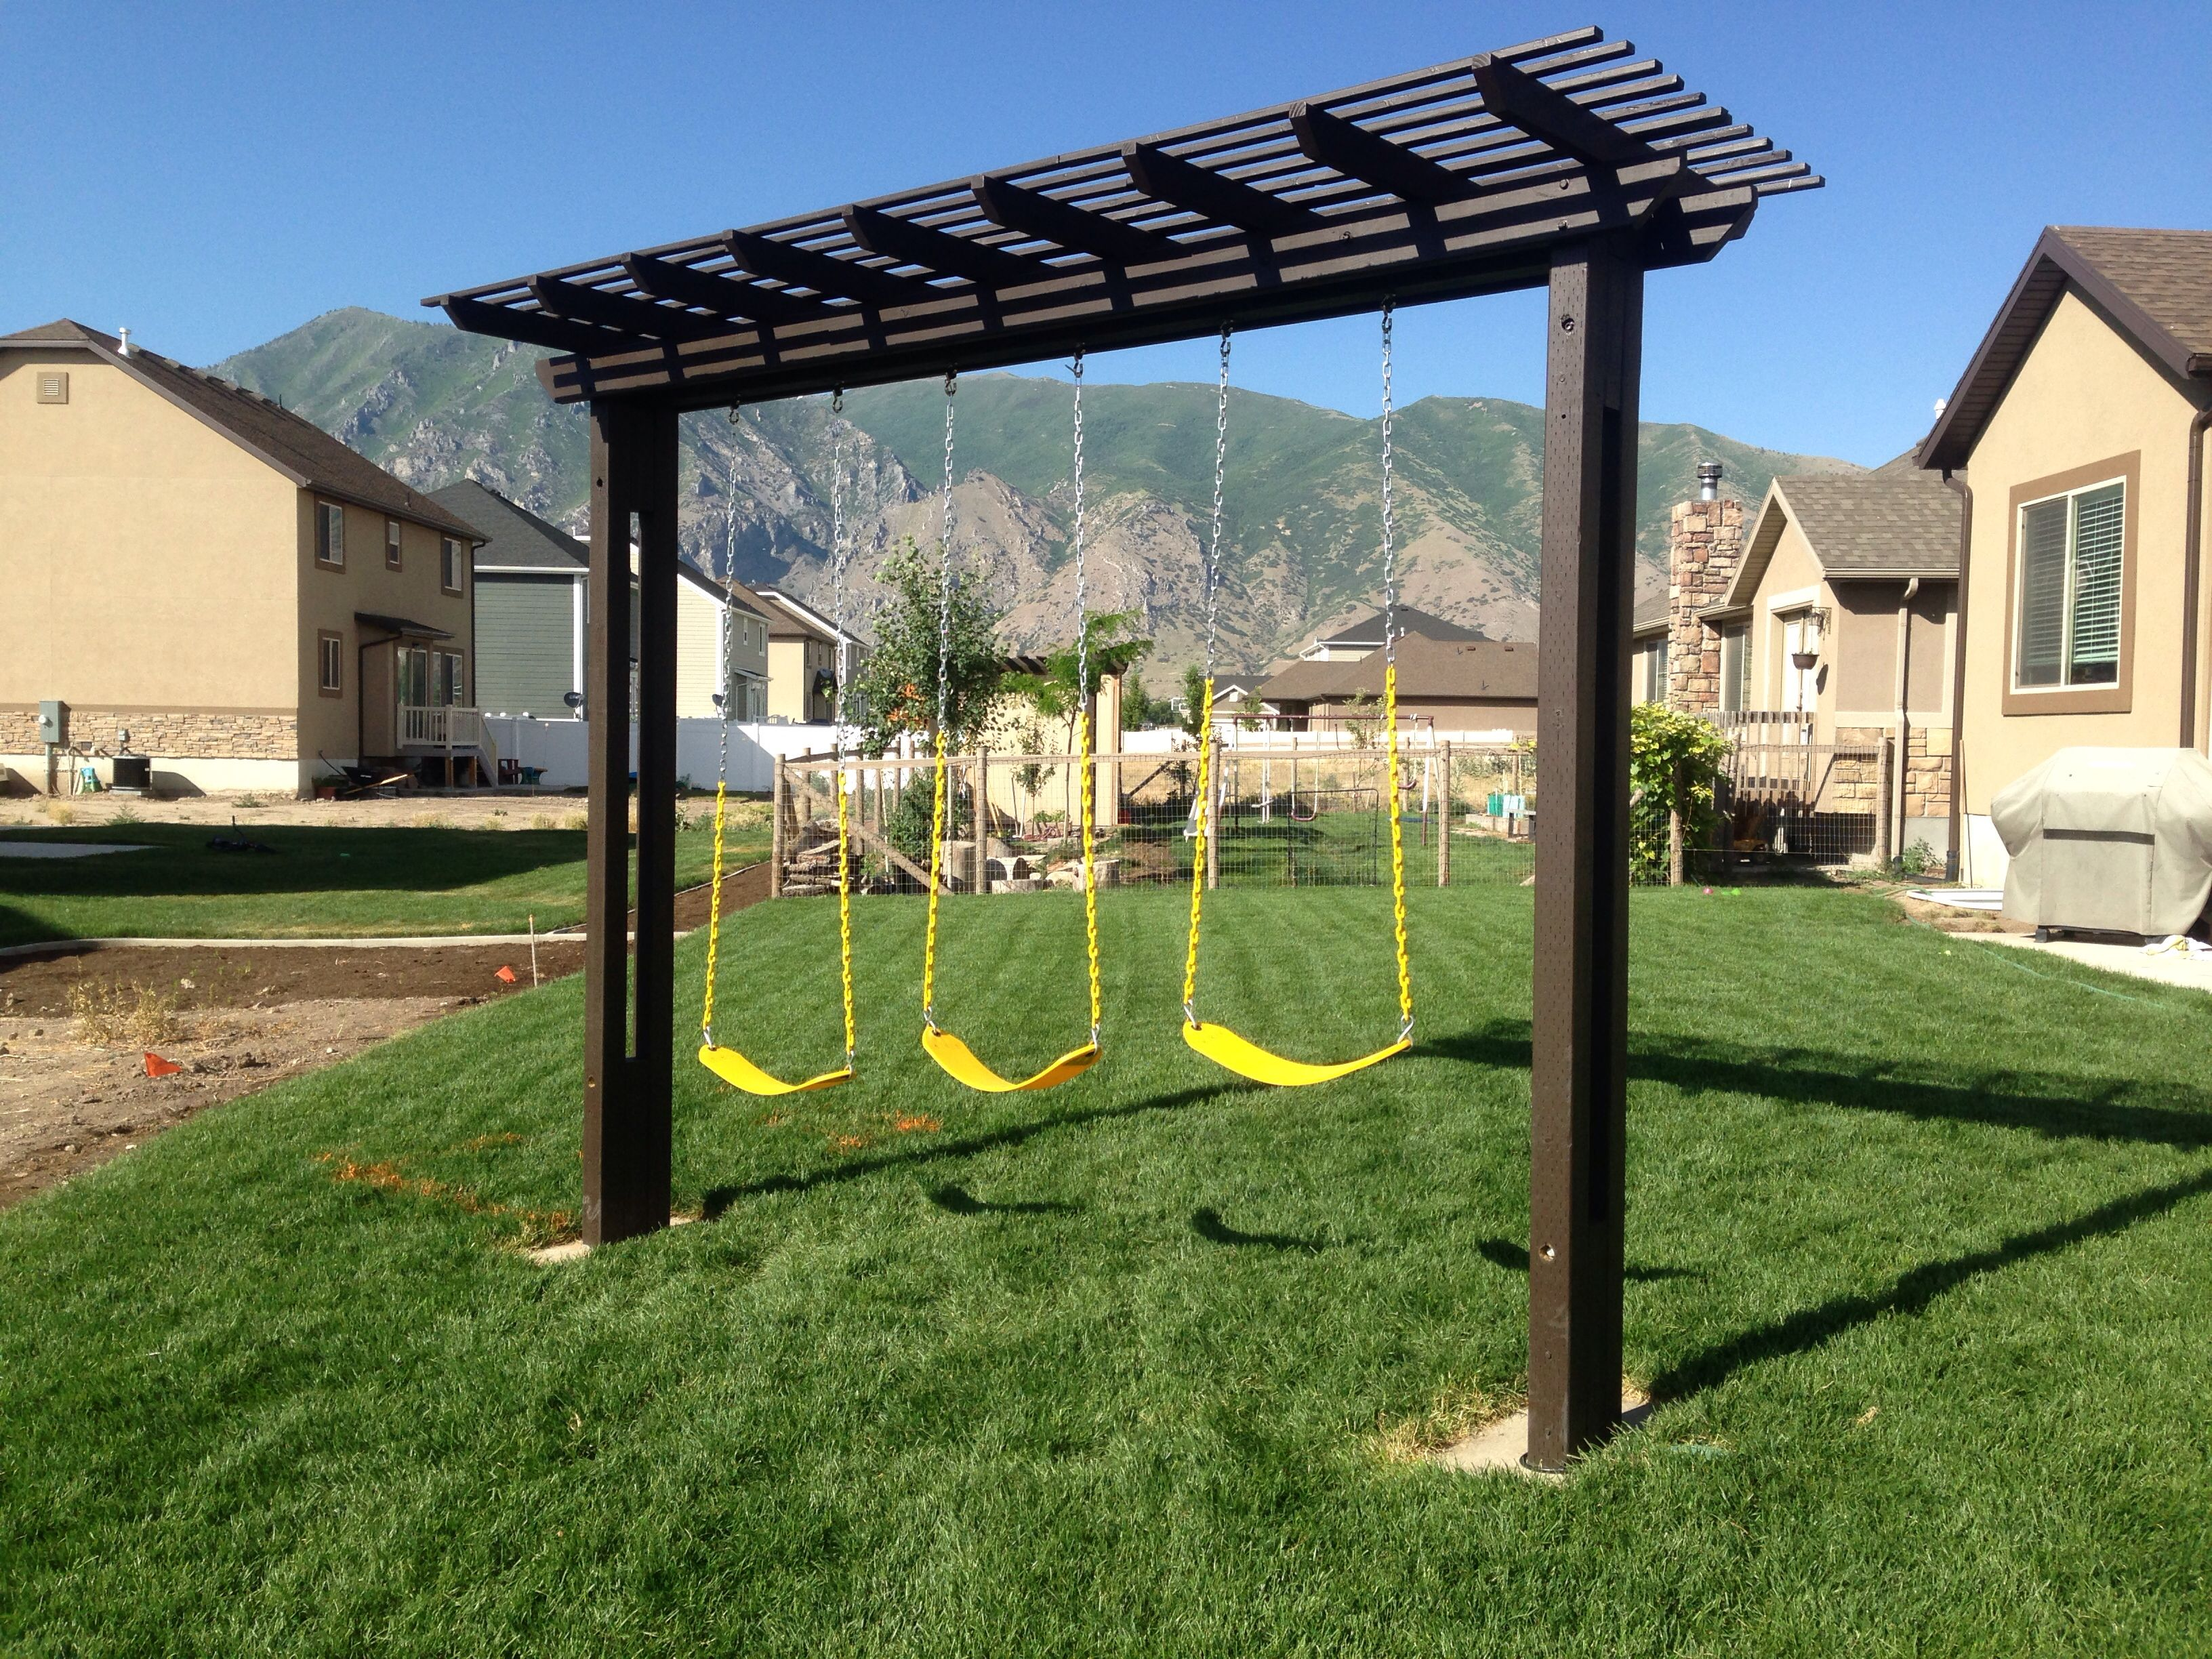 pergola swing set i built for my kids yard in 2019. Black Bedroom Furniture Sets. Home Design Ideas